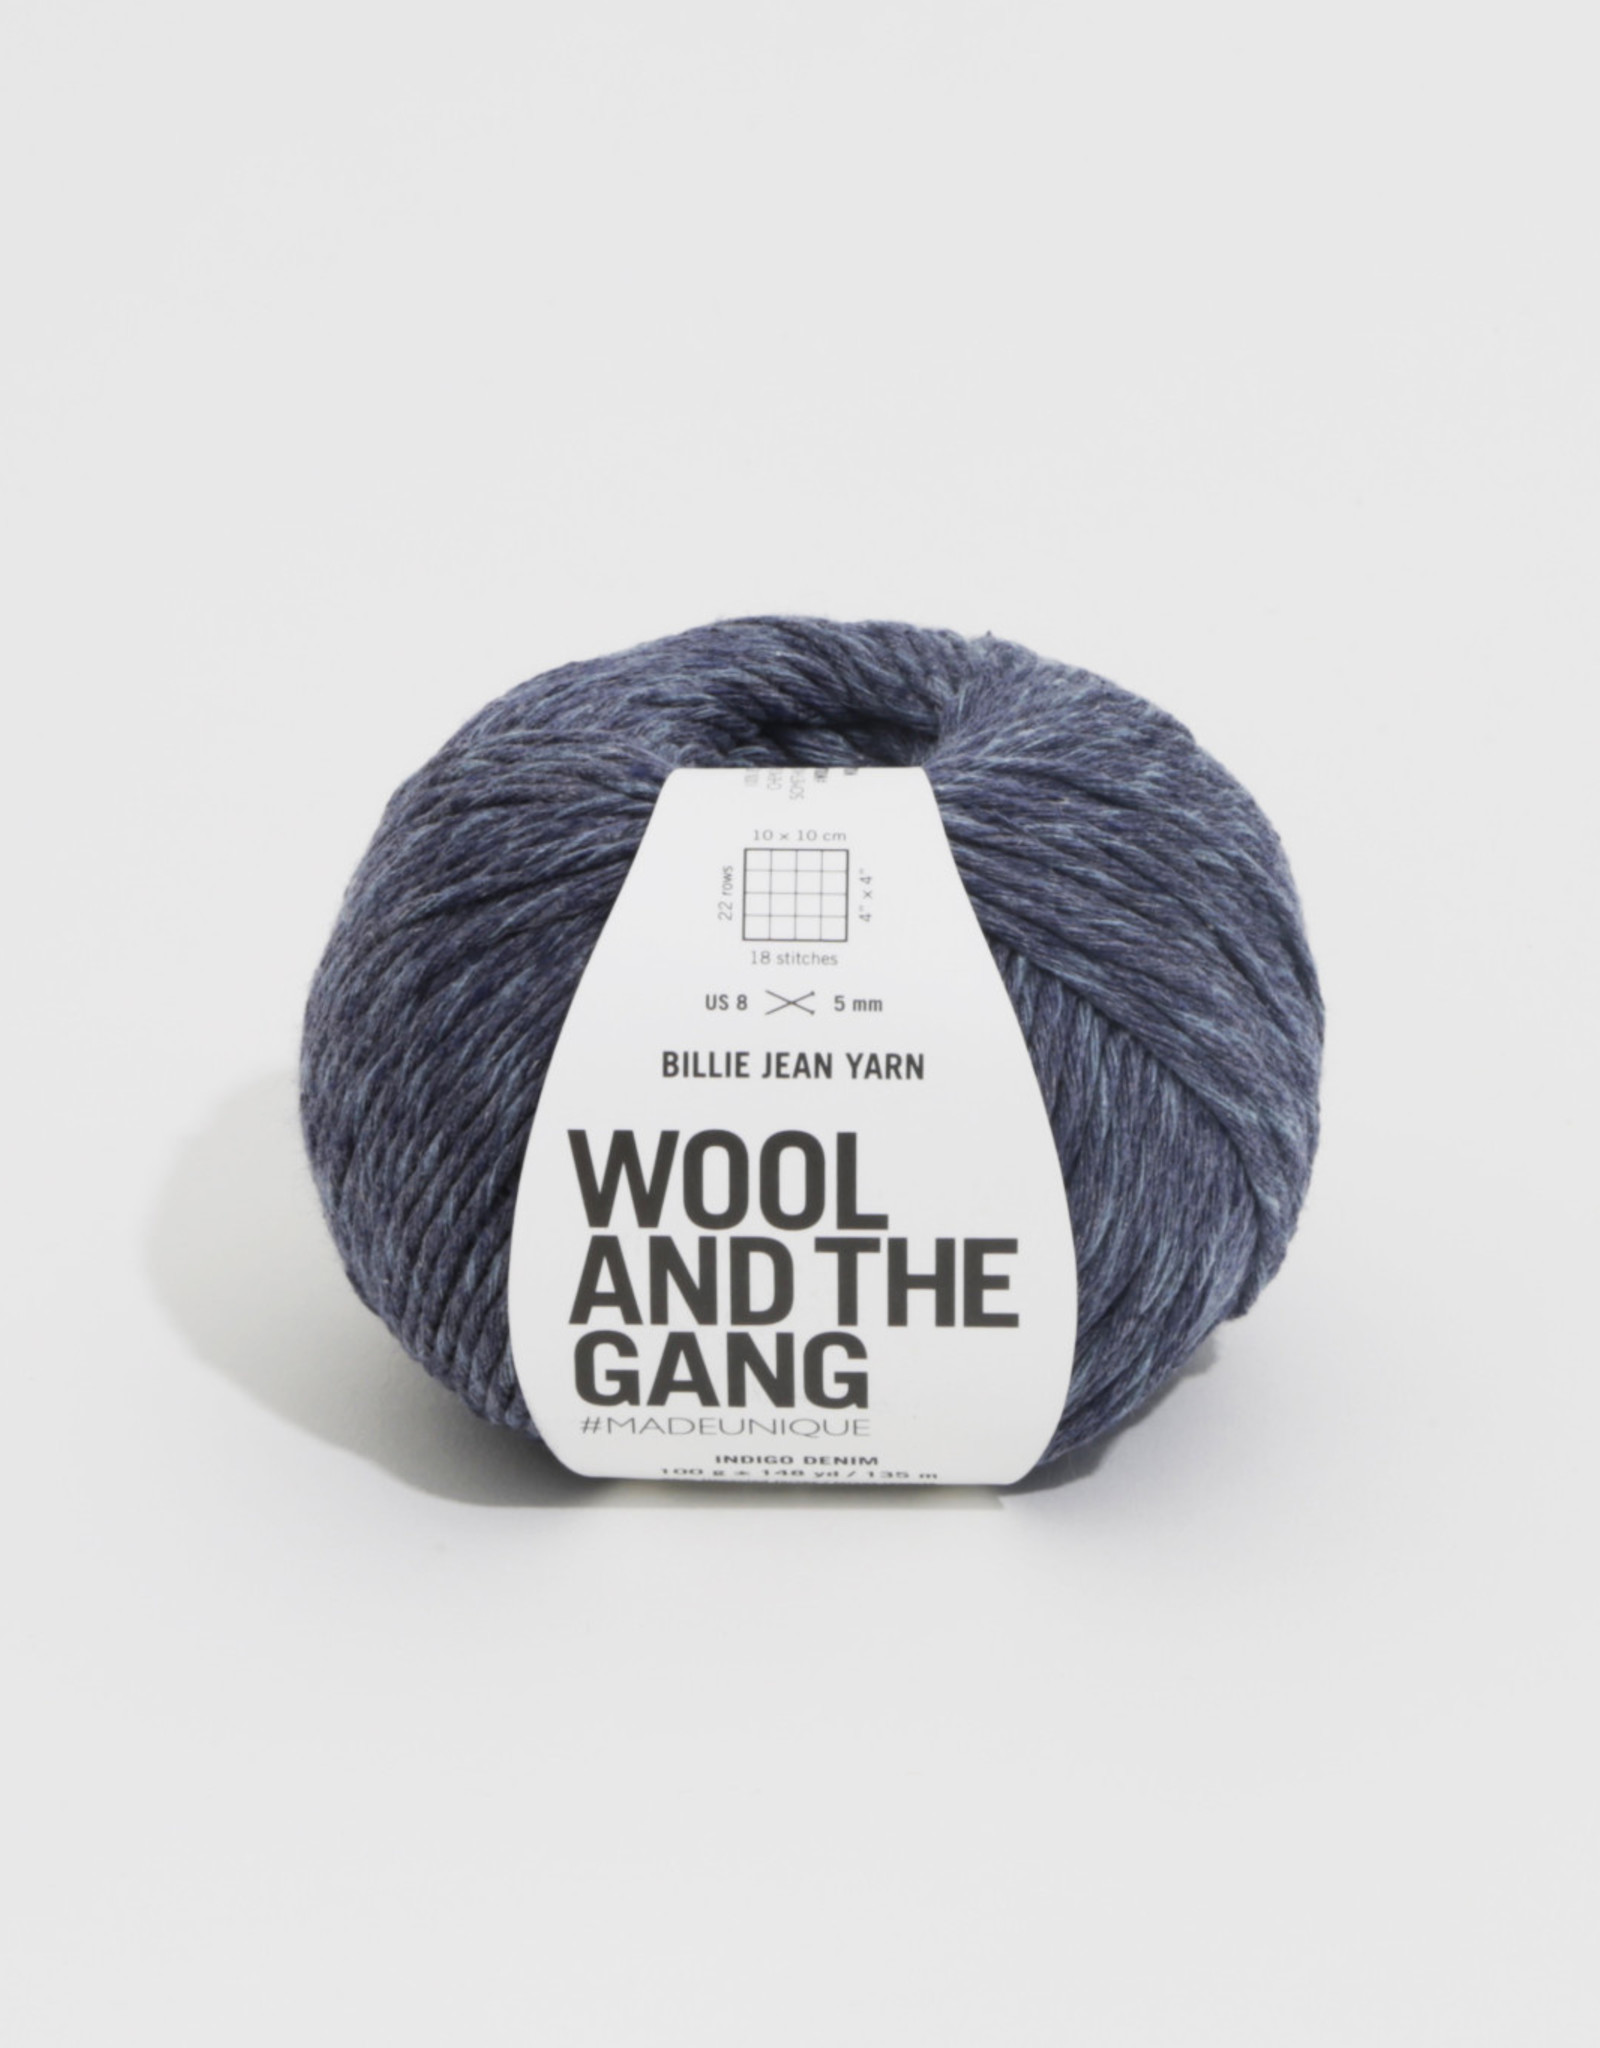 Wool and the Gang Billie Jean Yarn